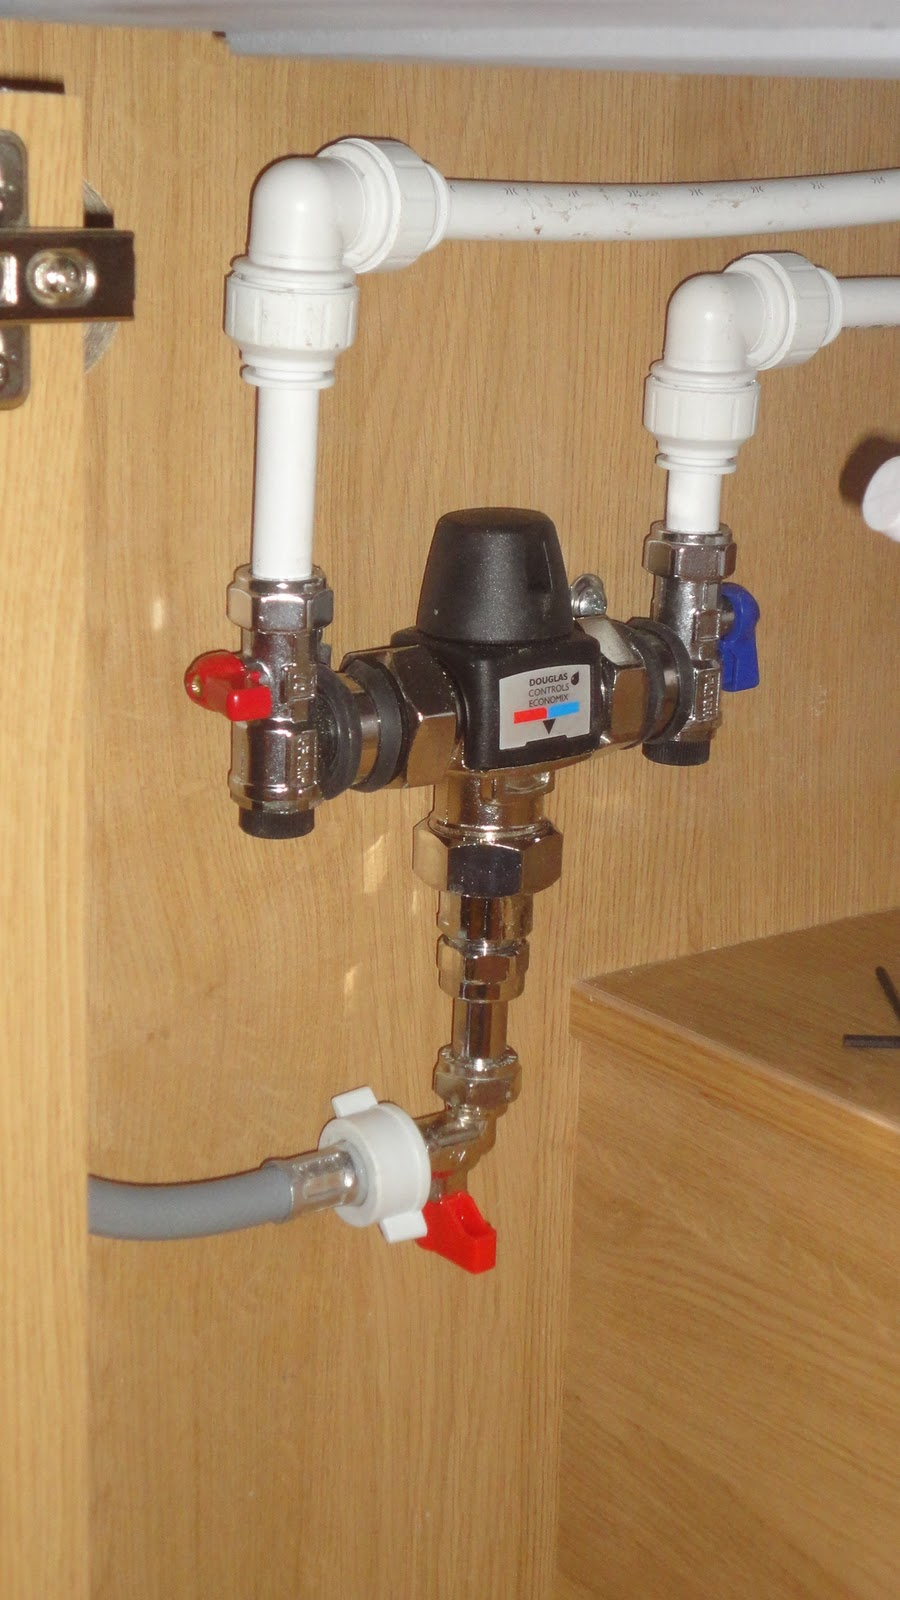 How To Install Mixing Valve In Shower